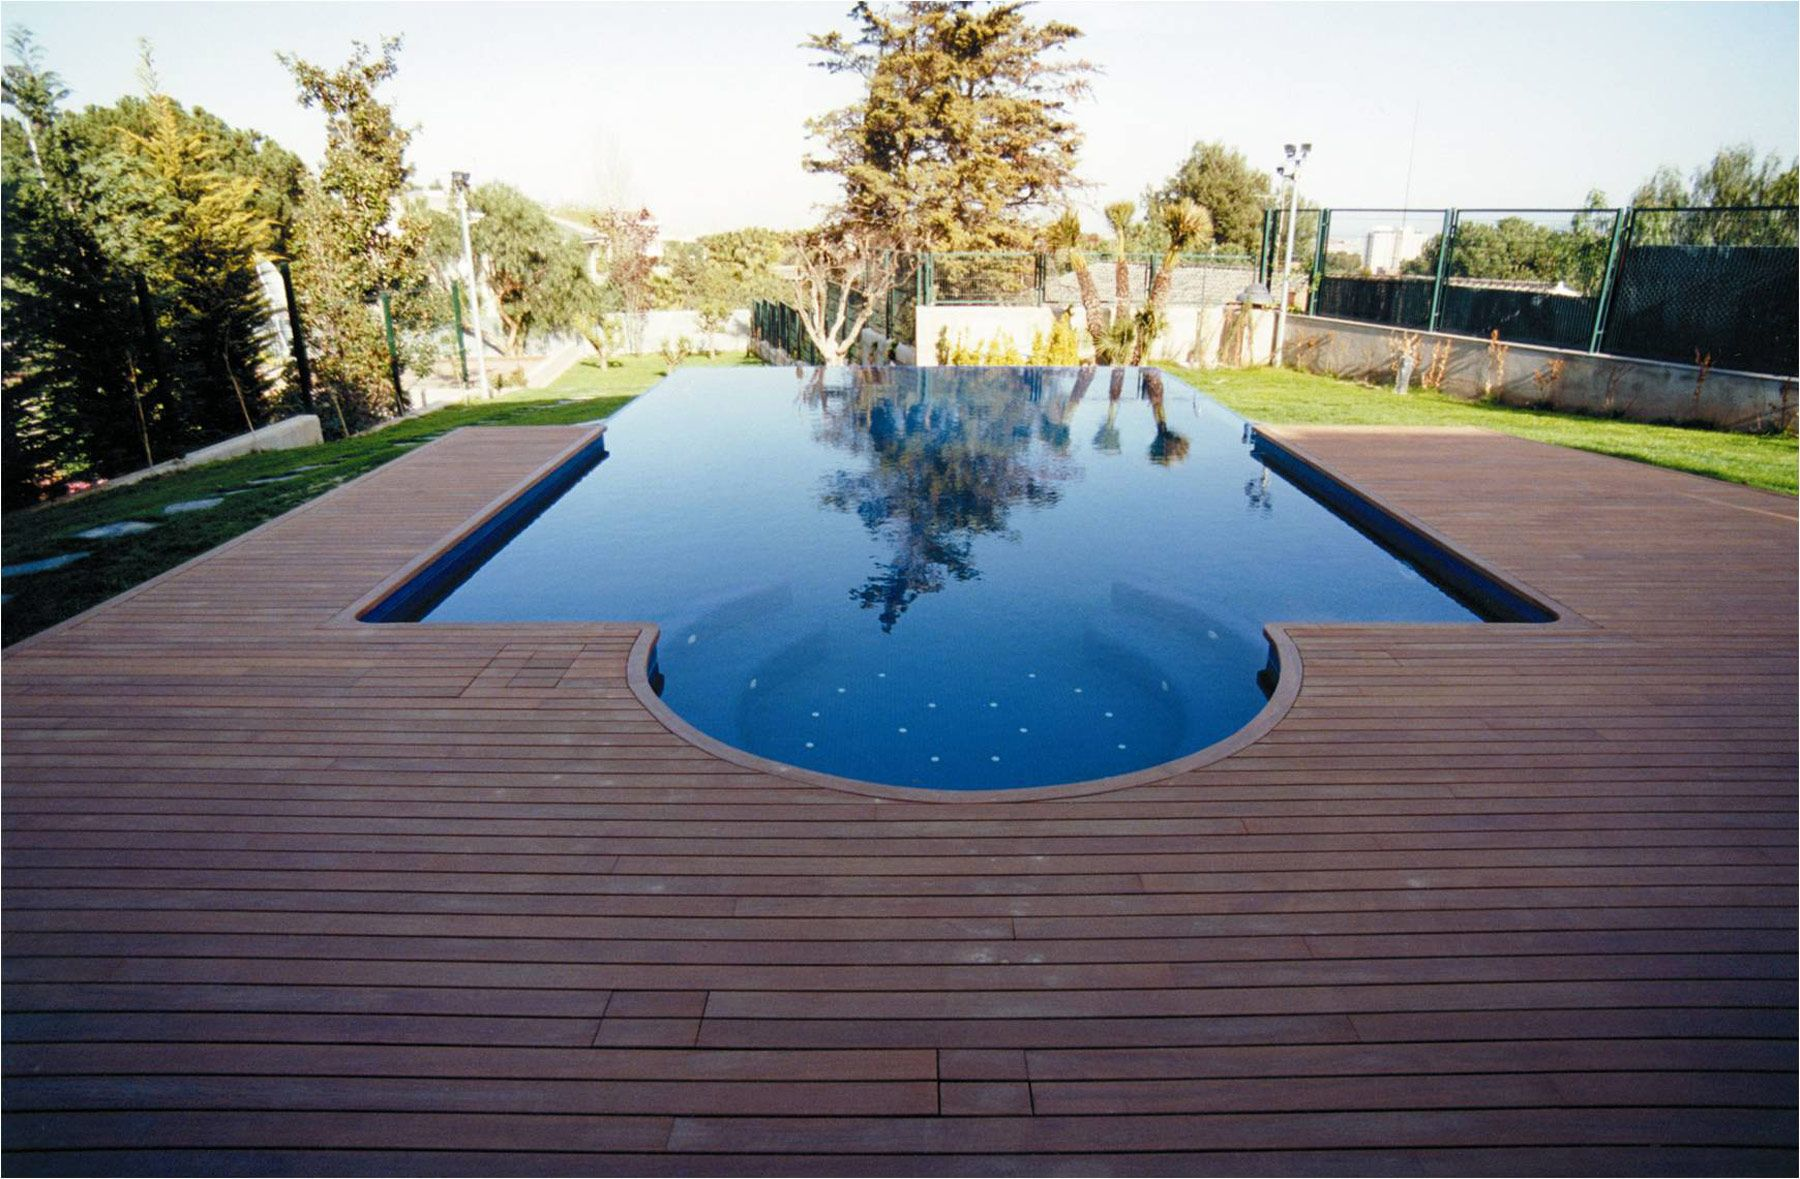 Pool Decking Ideas astonishing above ground swimming pool deck designs and 1000 ideas about swimming pool decks on pinterest Pool Decking Option If I Was Ever Going To Have A Pool